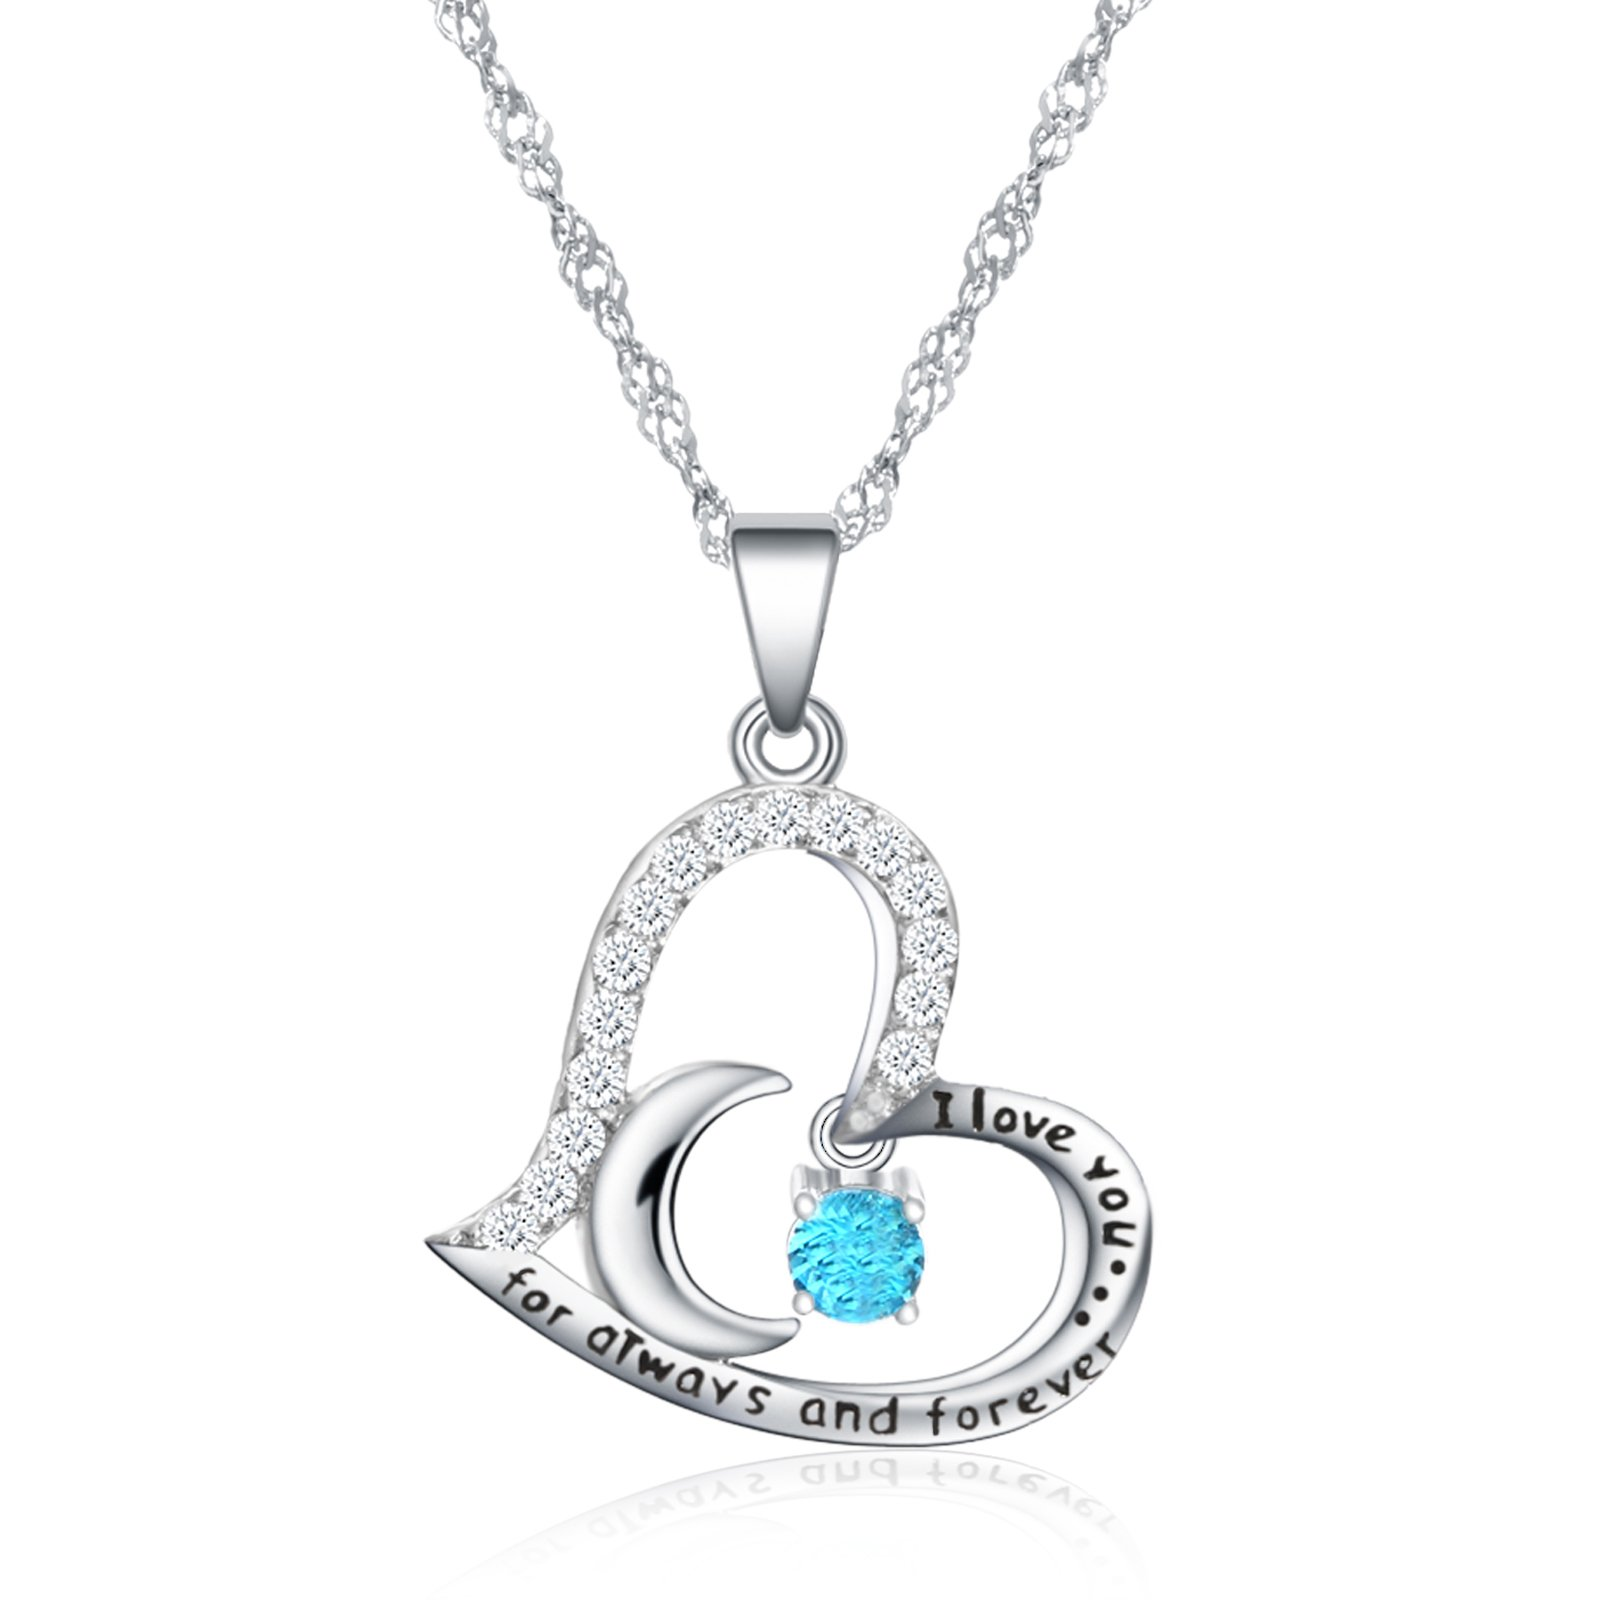 Fine Jewelry Birthstone Necklace Heart Birthstone Jewelry I Love You For Always and Forever Birthstone Jewelry for Women (03-March-Aquamarine)